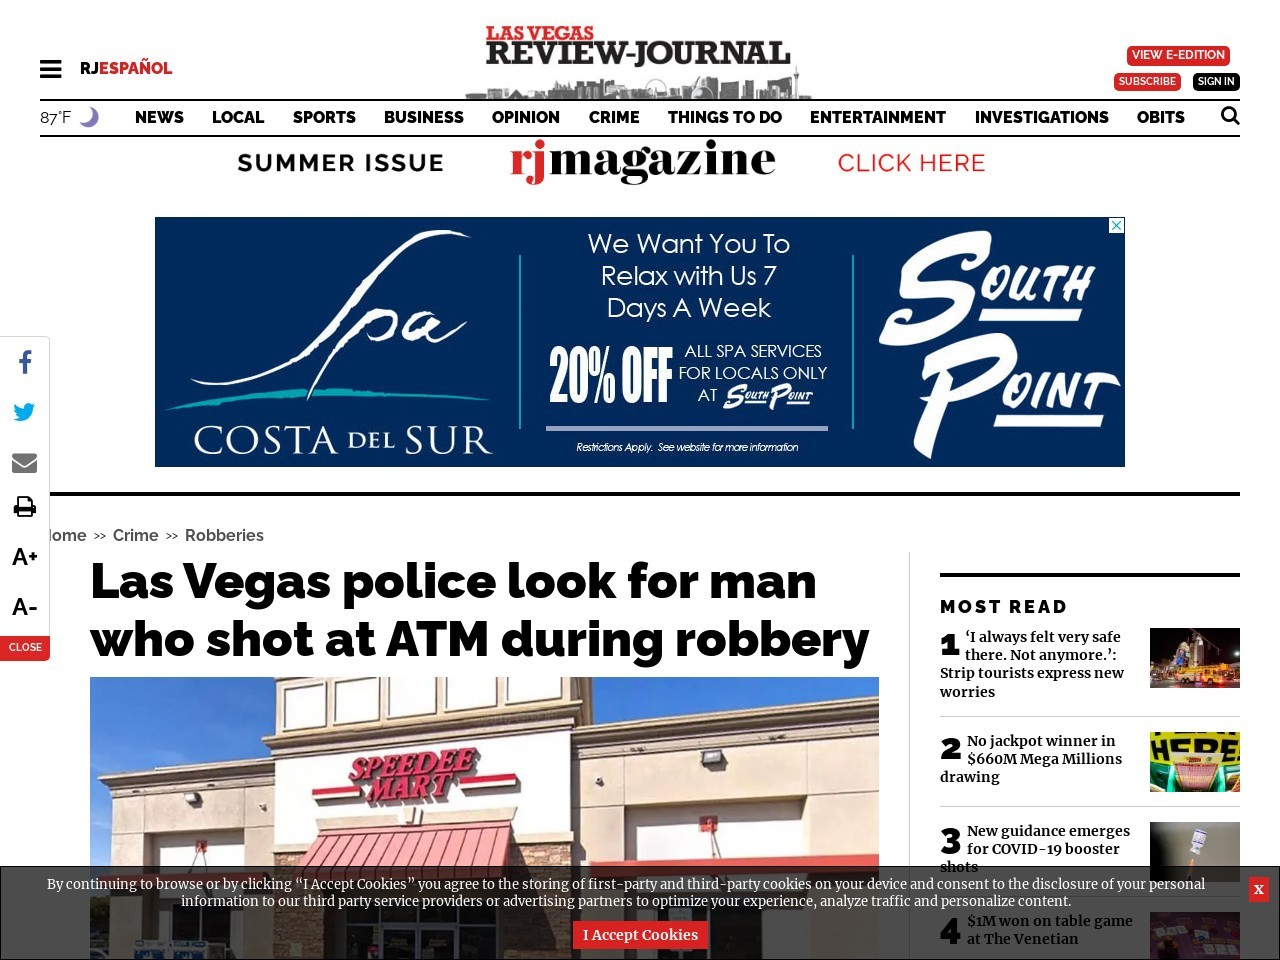 Las Vegas police look for man who shot at ATM during robbery